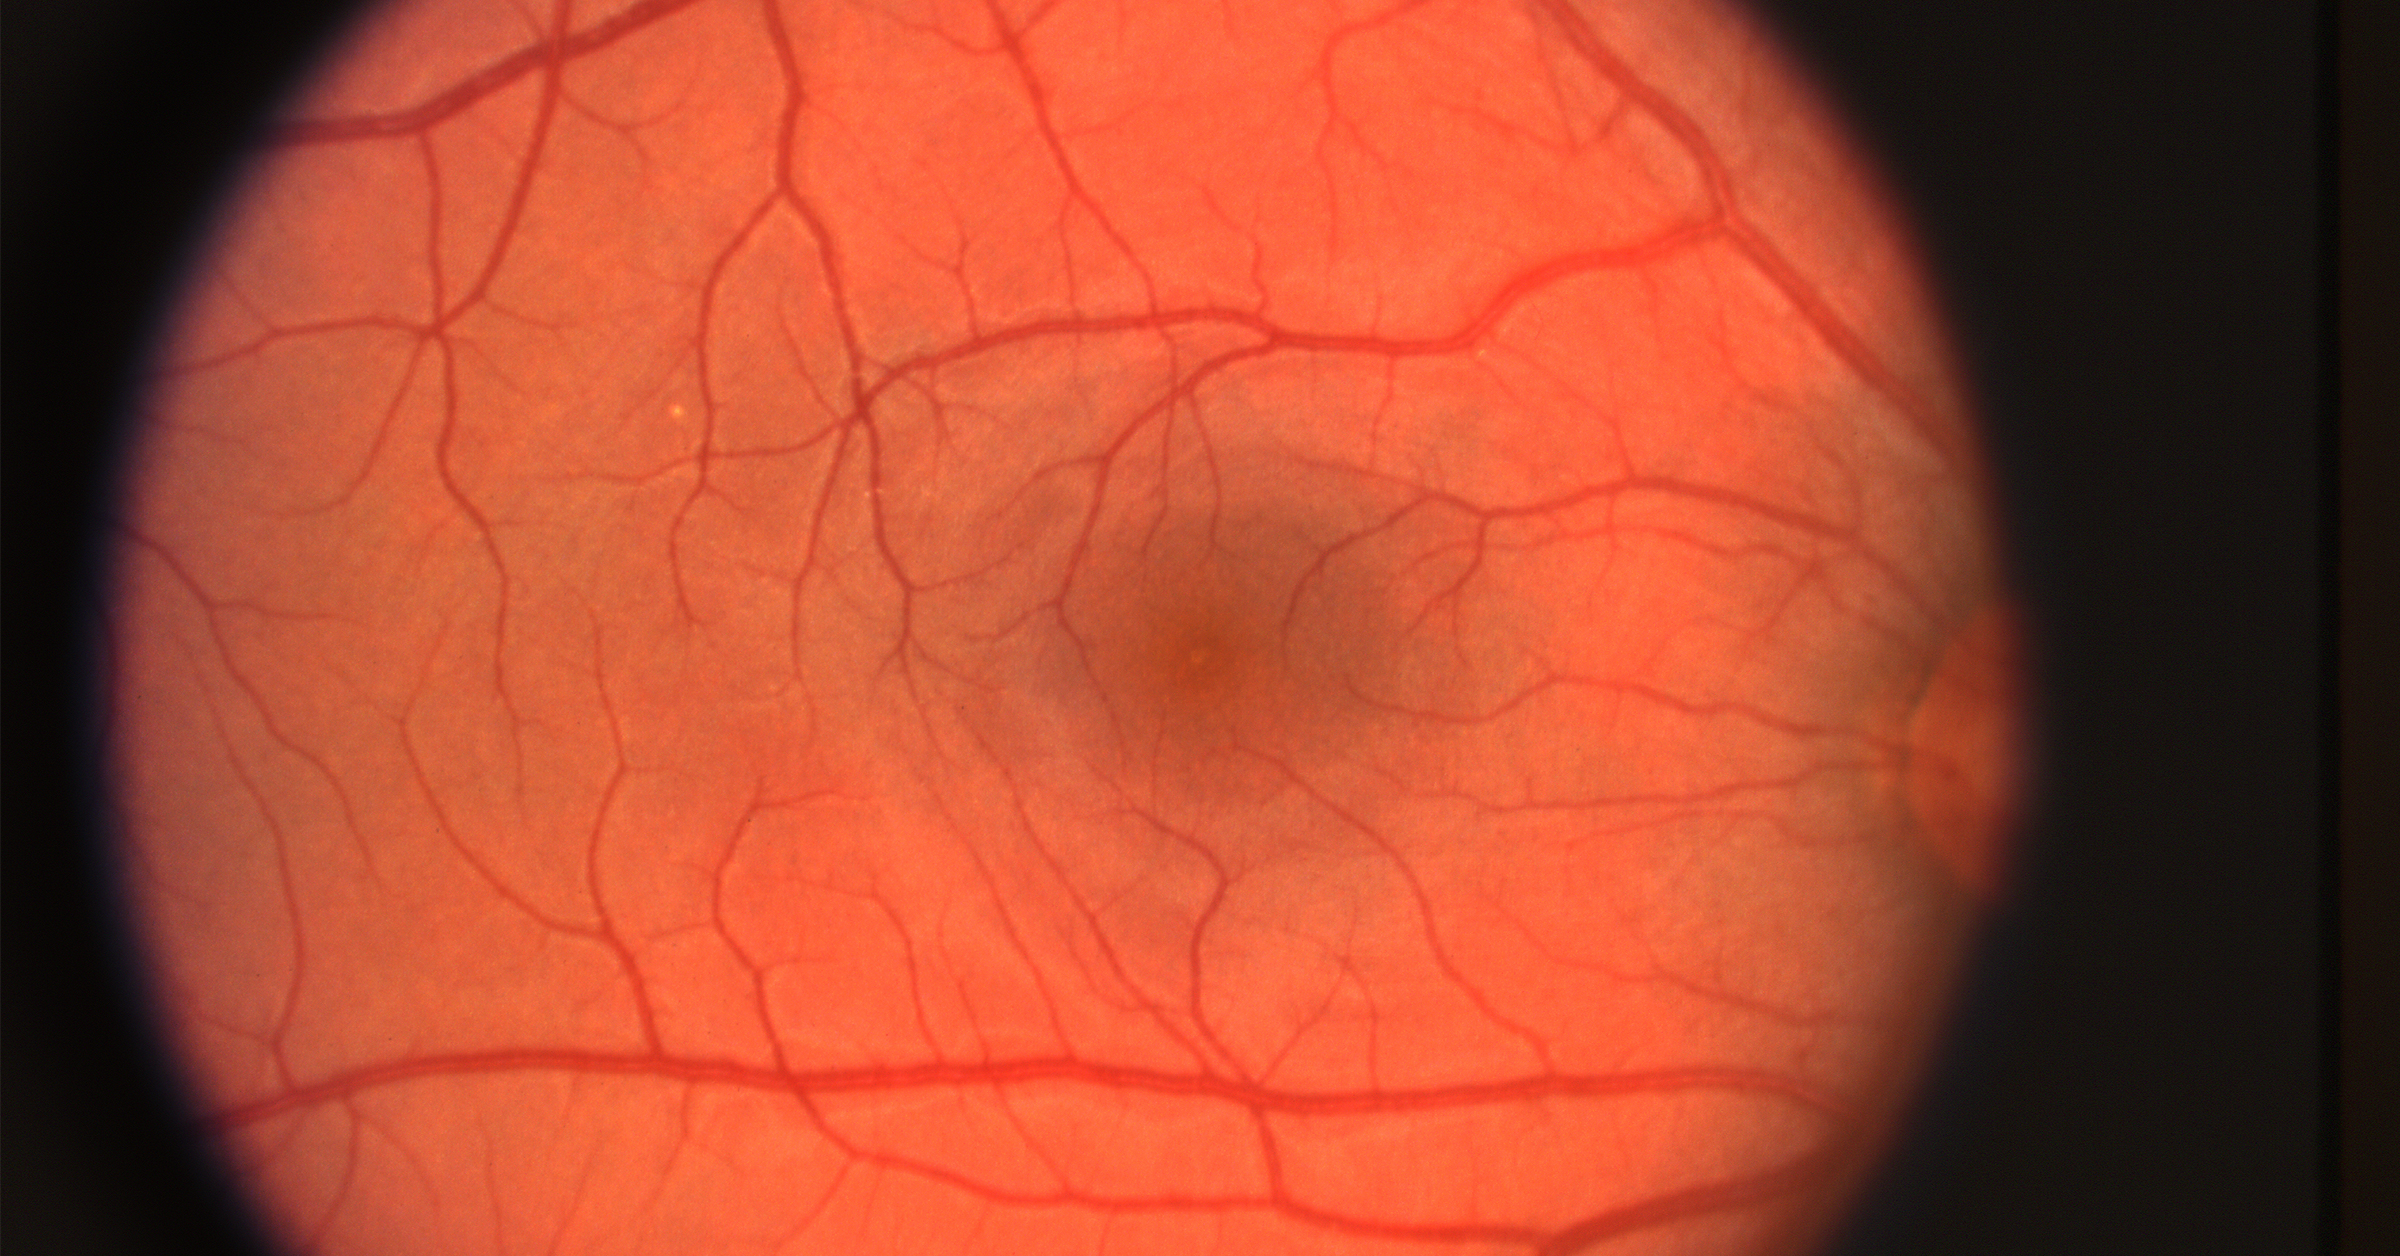 macular degeneration what is